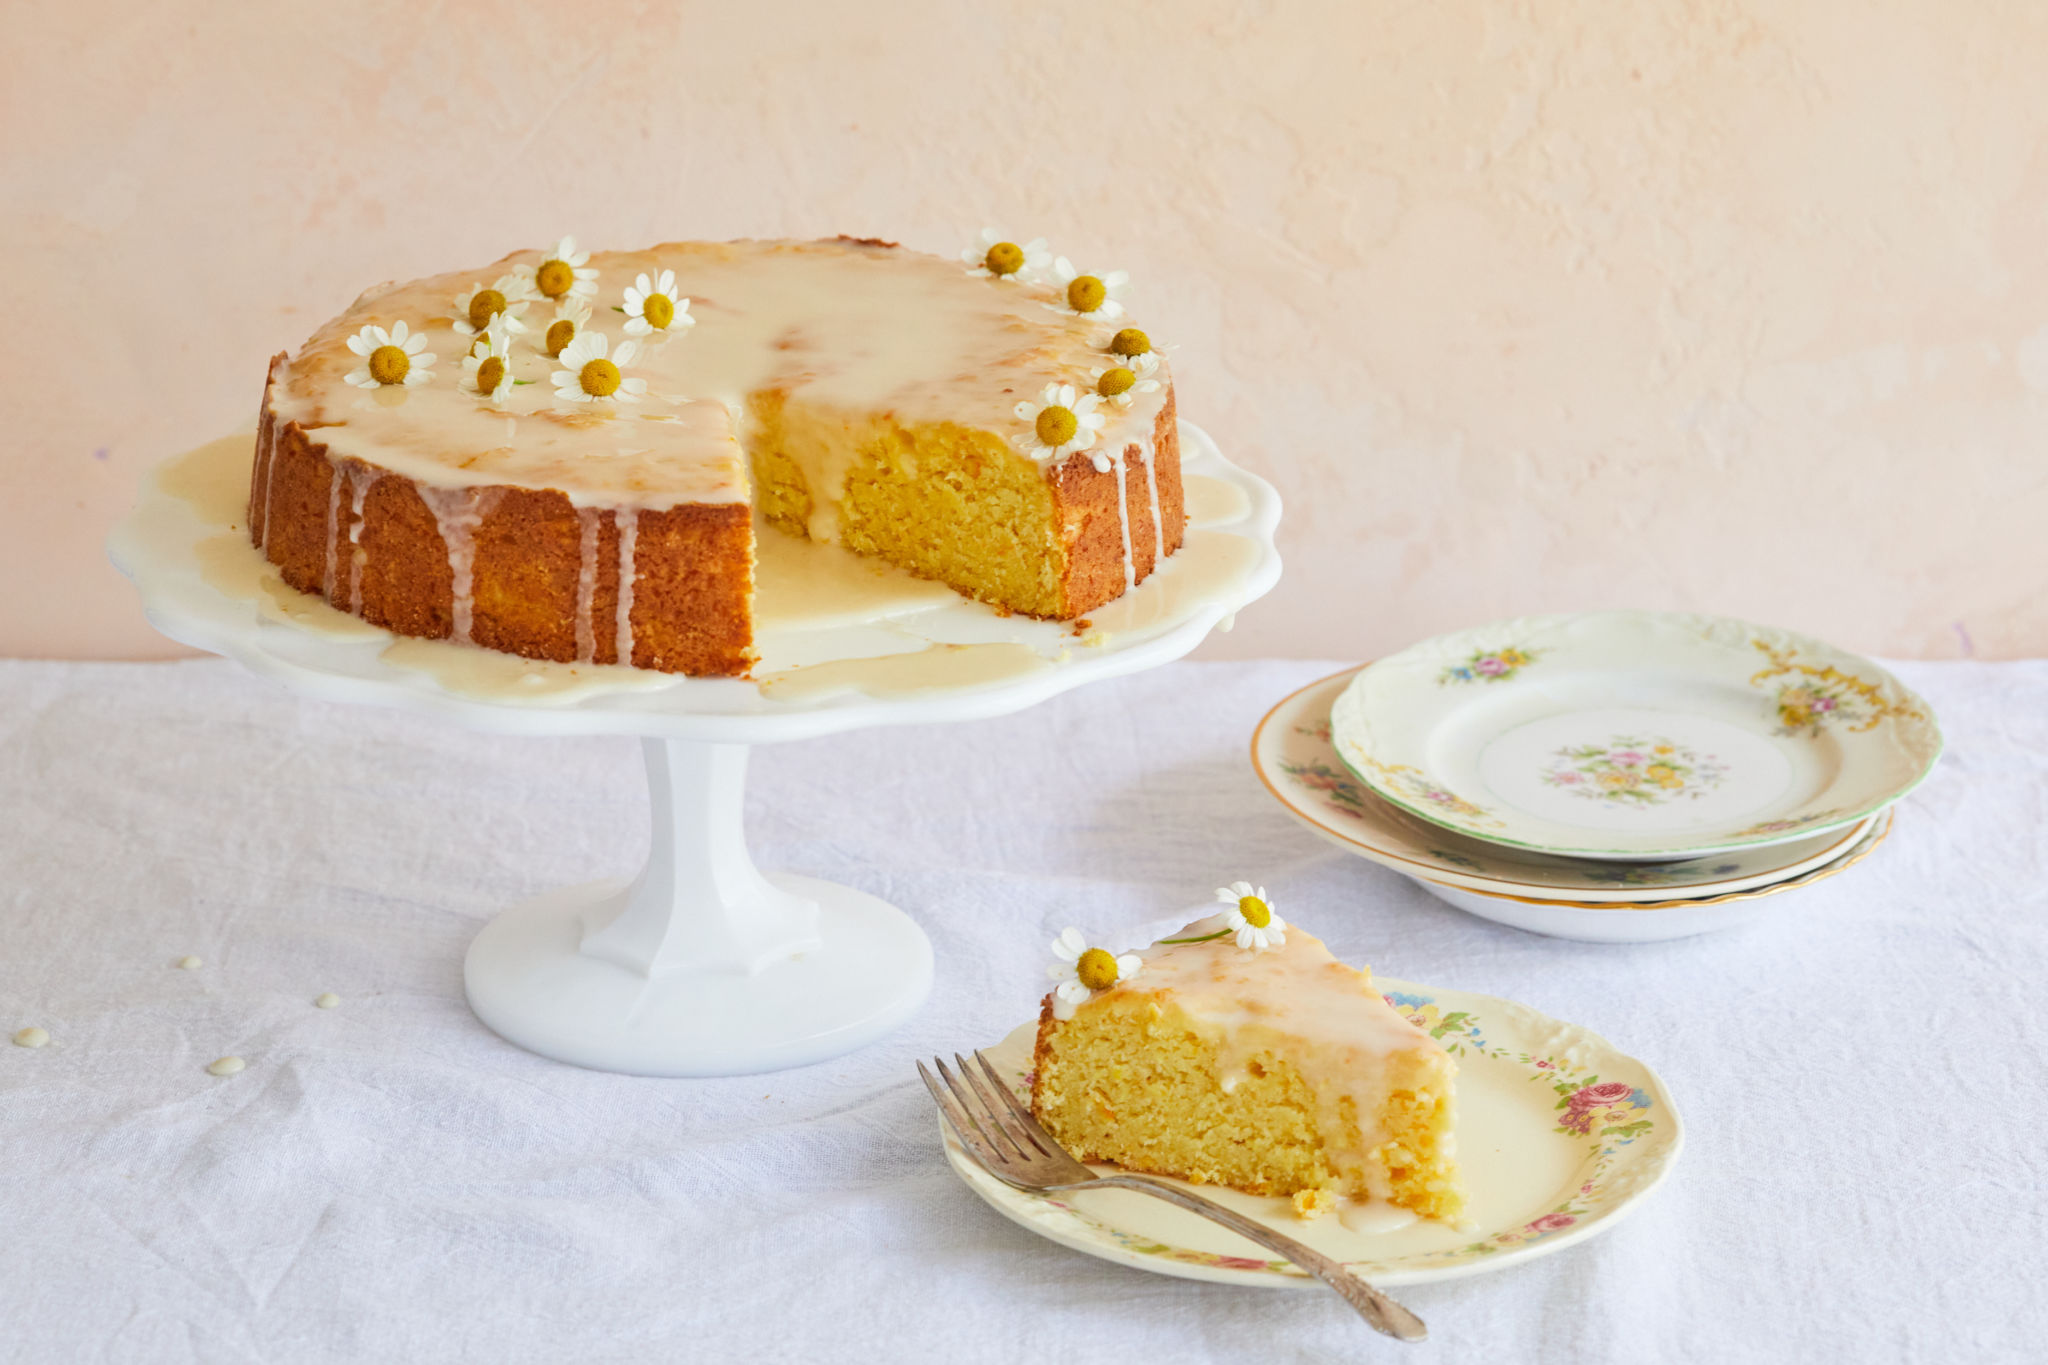 A whole orange cake with a slice removed.